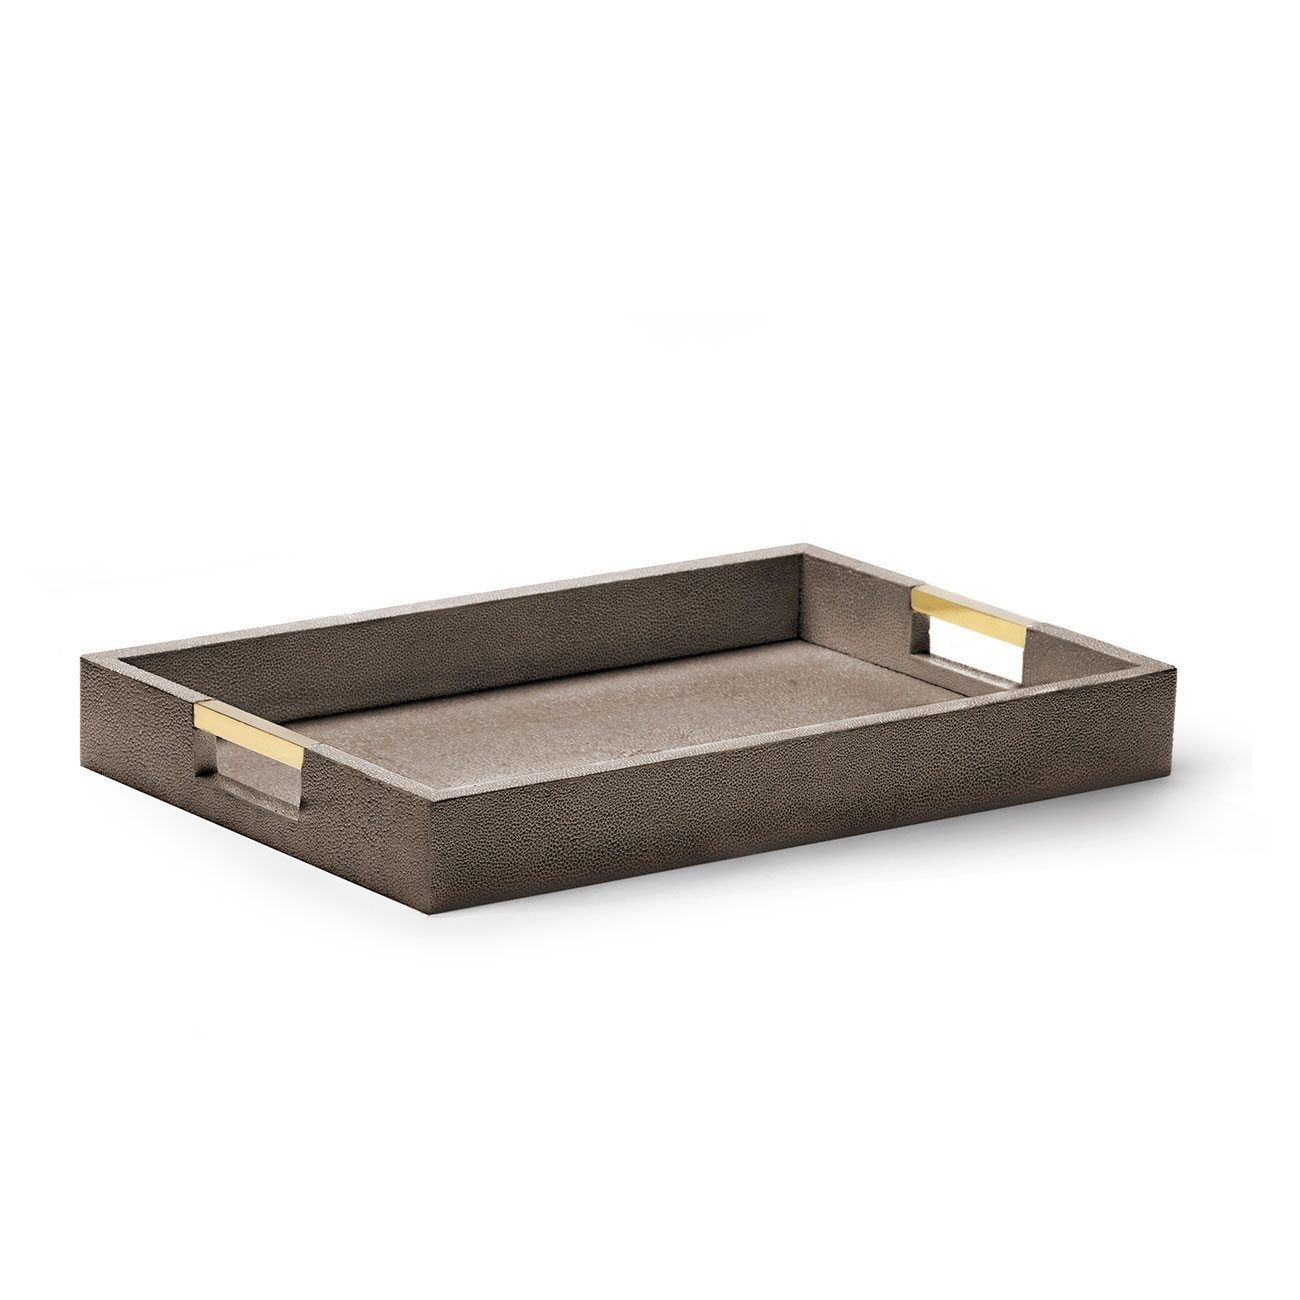 Aerin Classic Shagreen Serving Tray, Chocolate